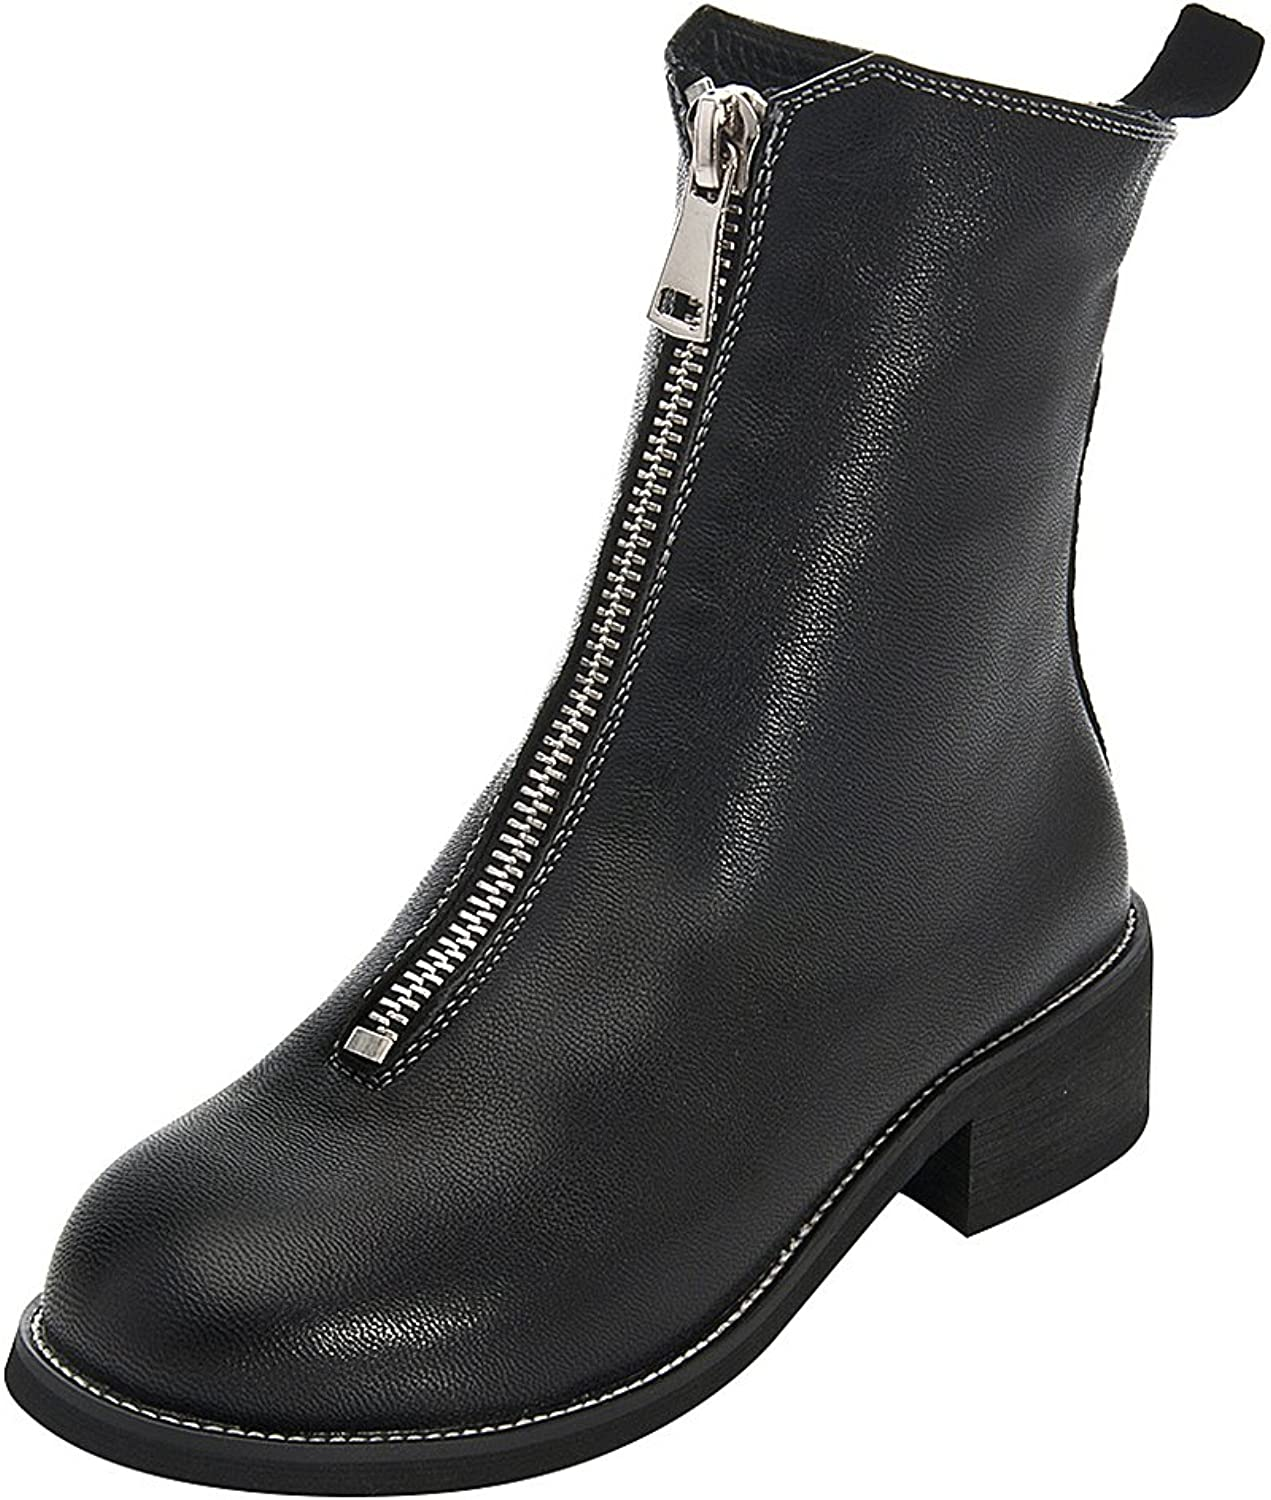 Rismart Women's Low Heel Mid Calf Zip Round Toe Leather Riding Boots